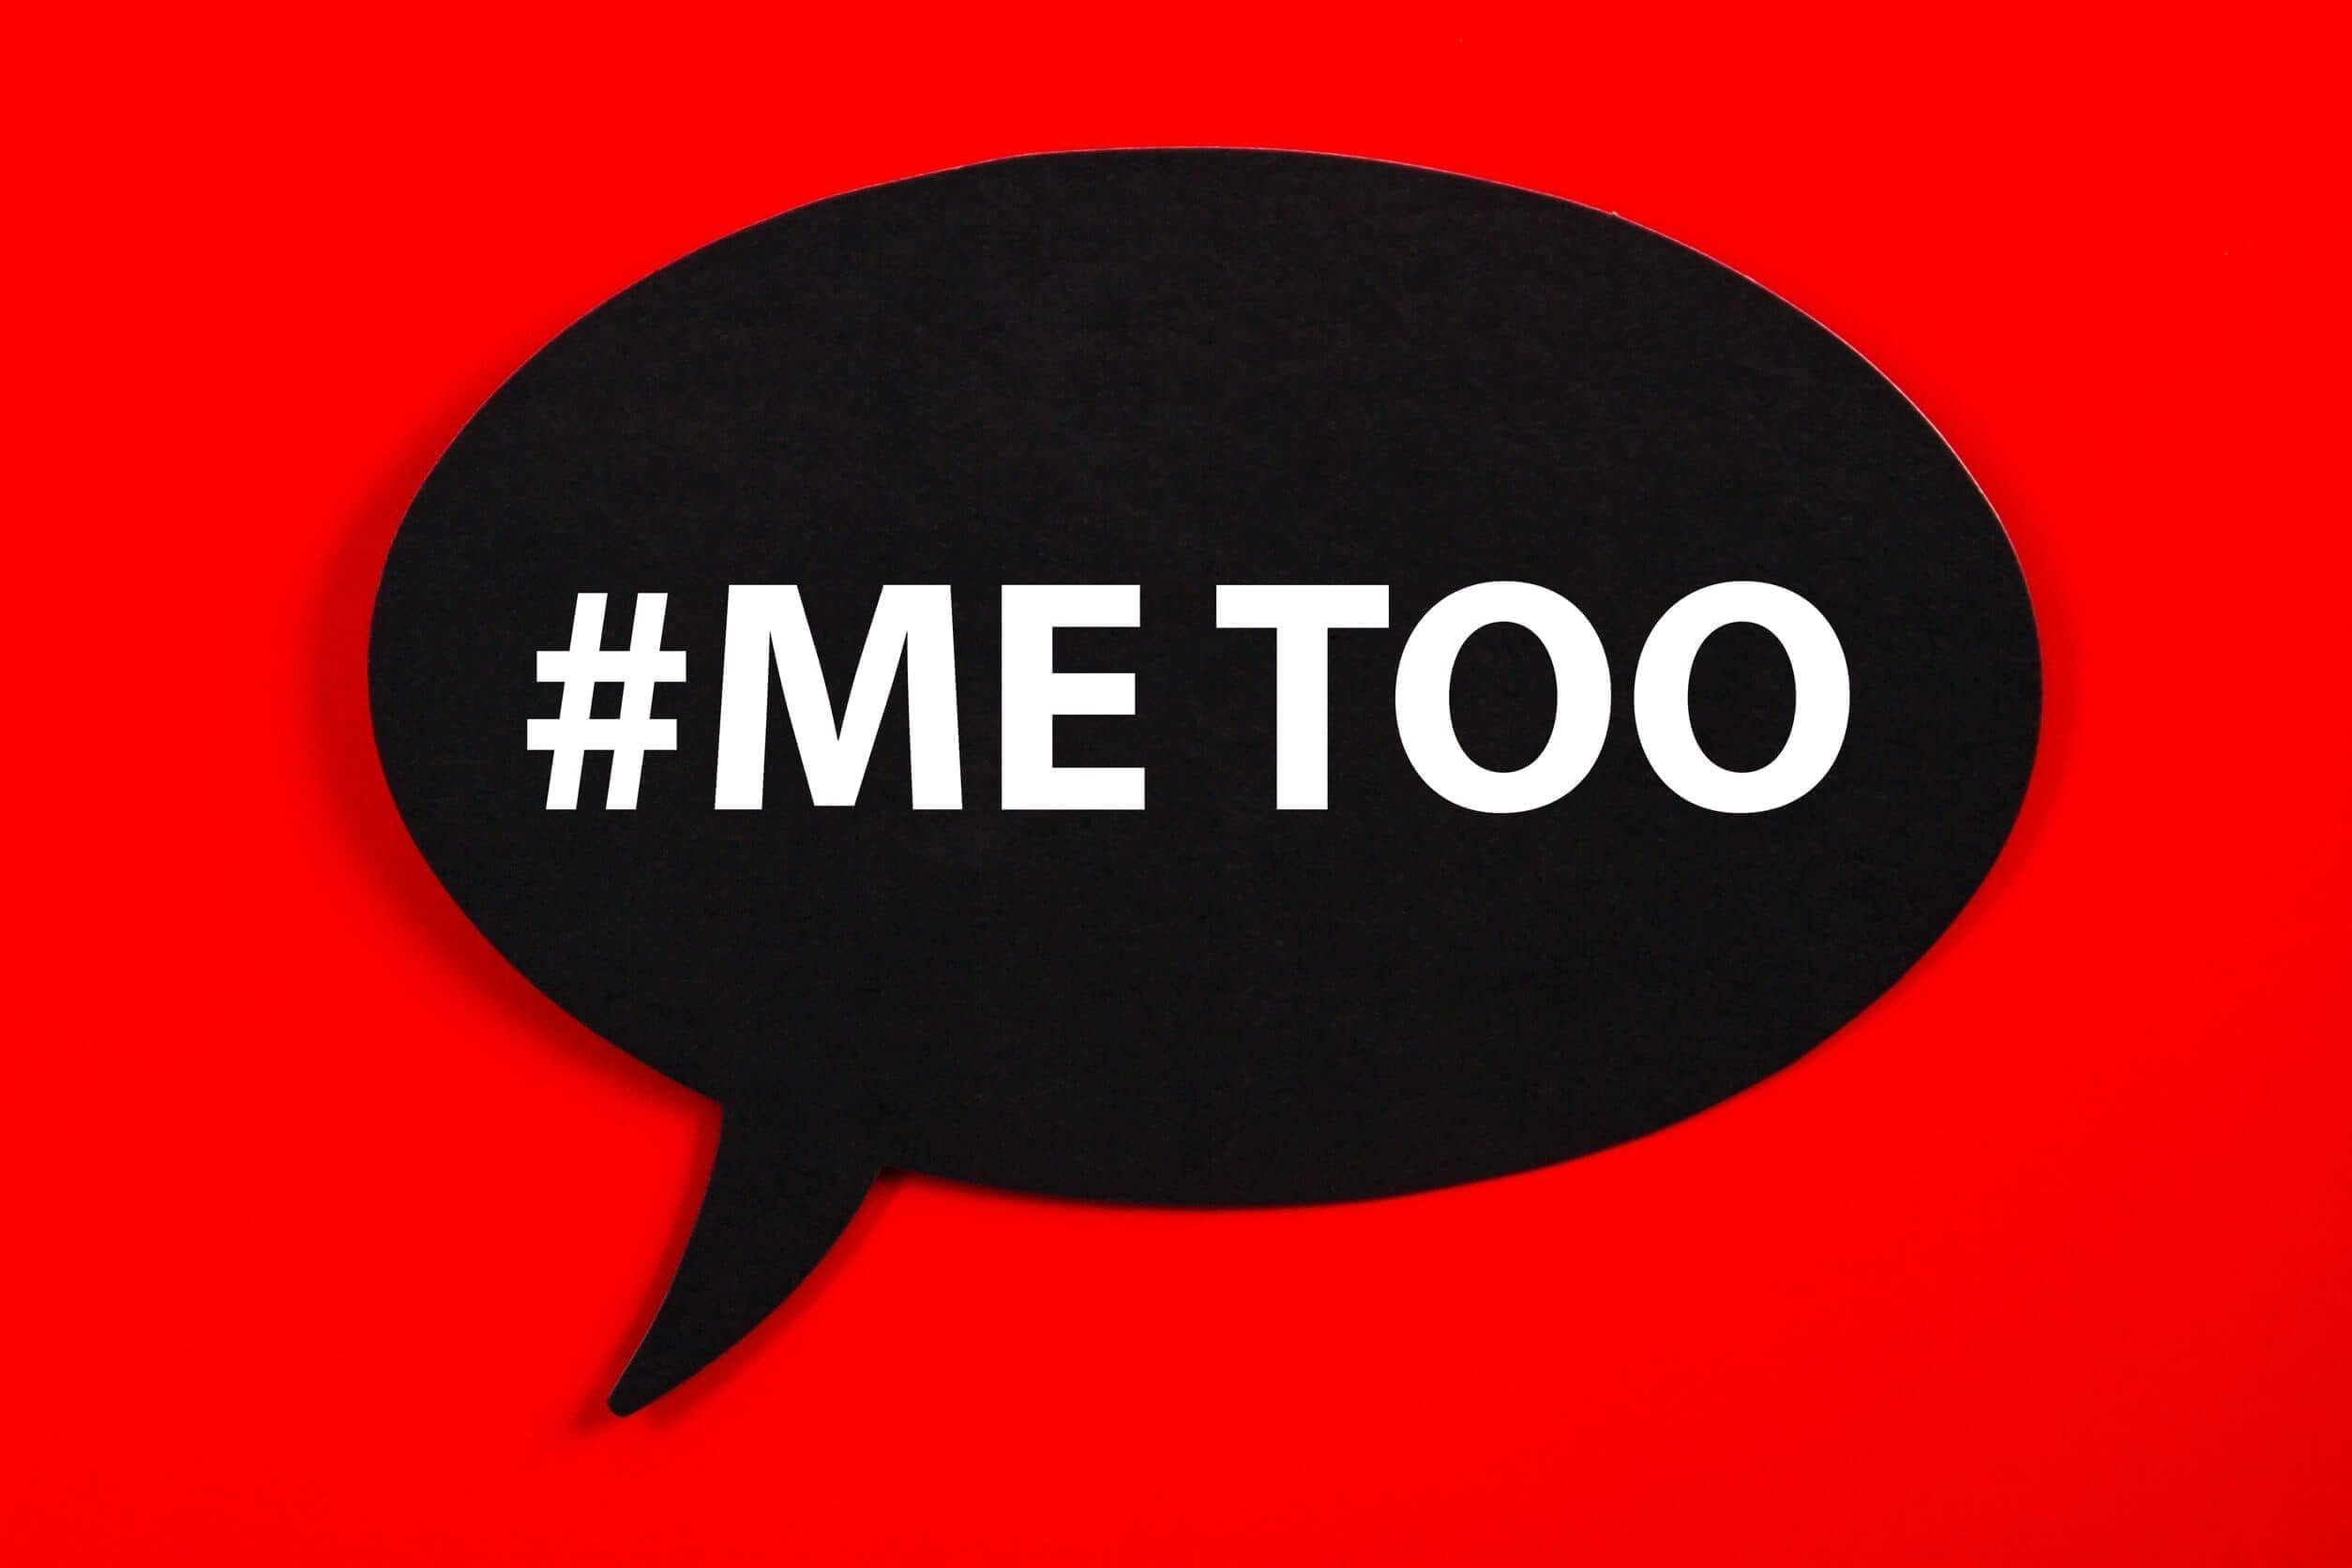 Beyond #MeToo: What Texans Can Do After Suffering Sexual Harassment